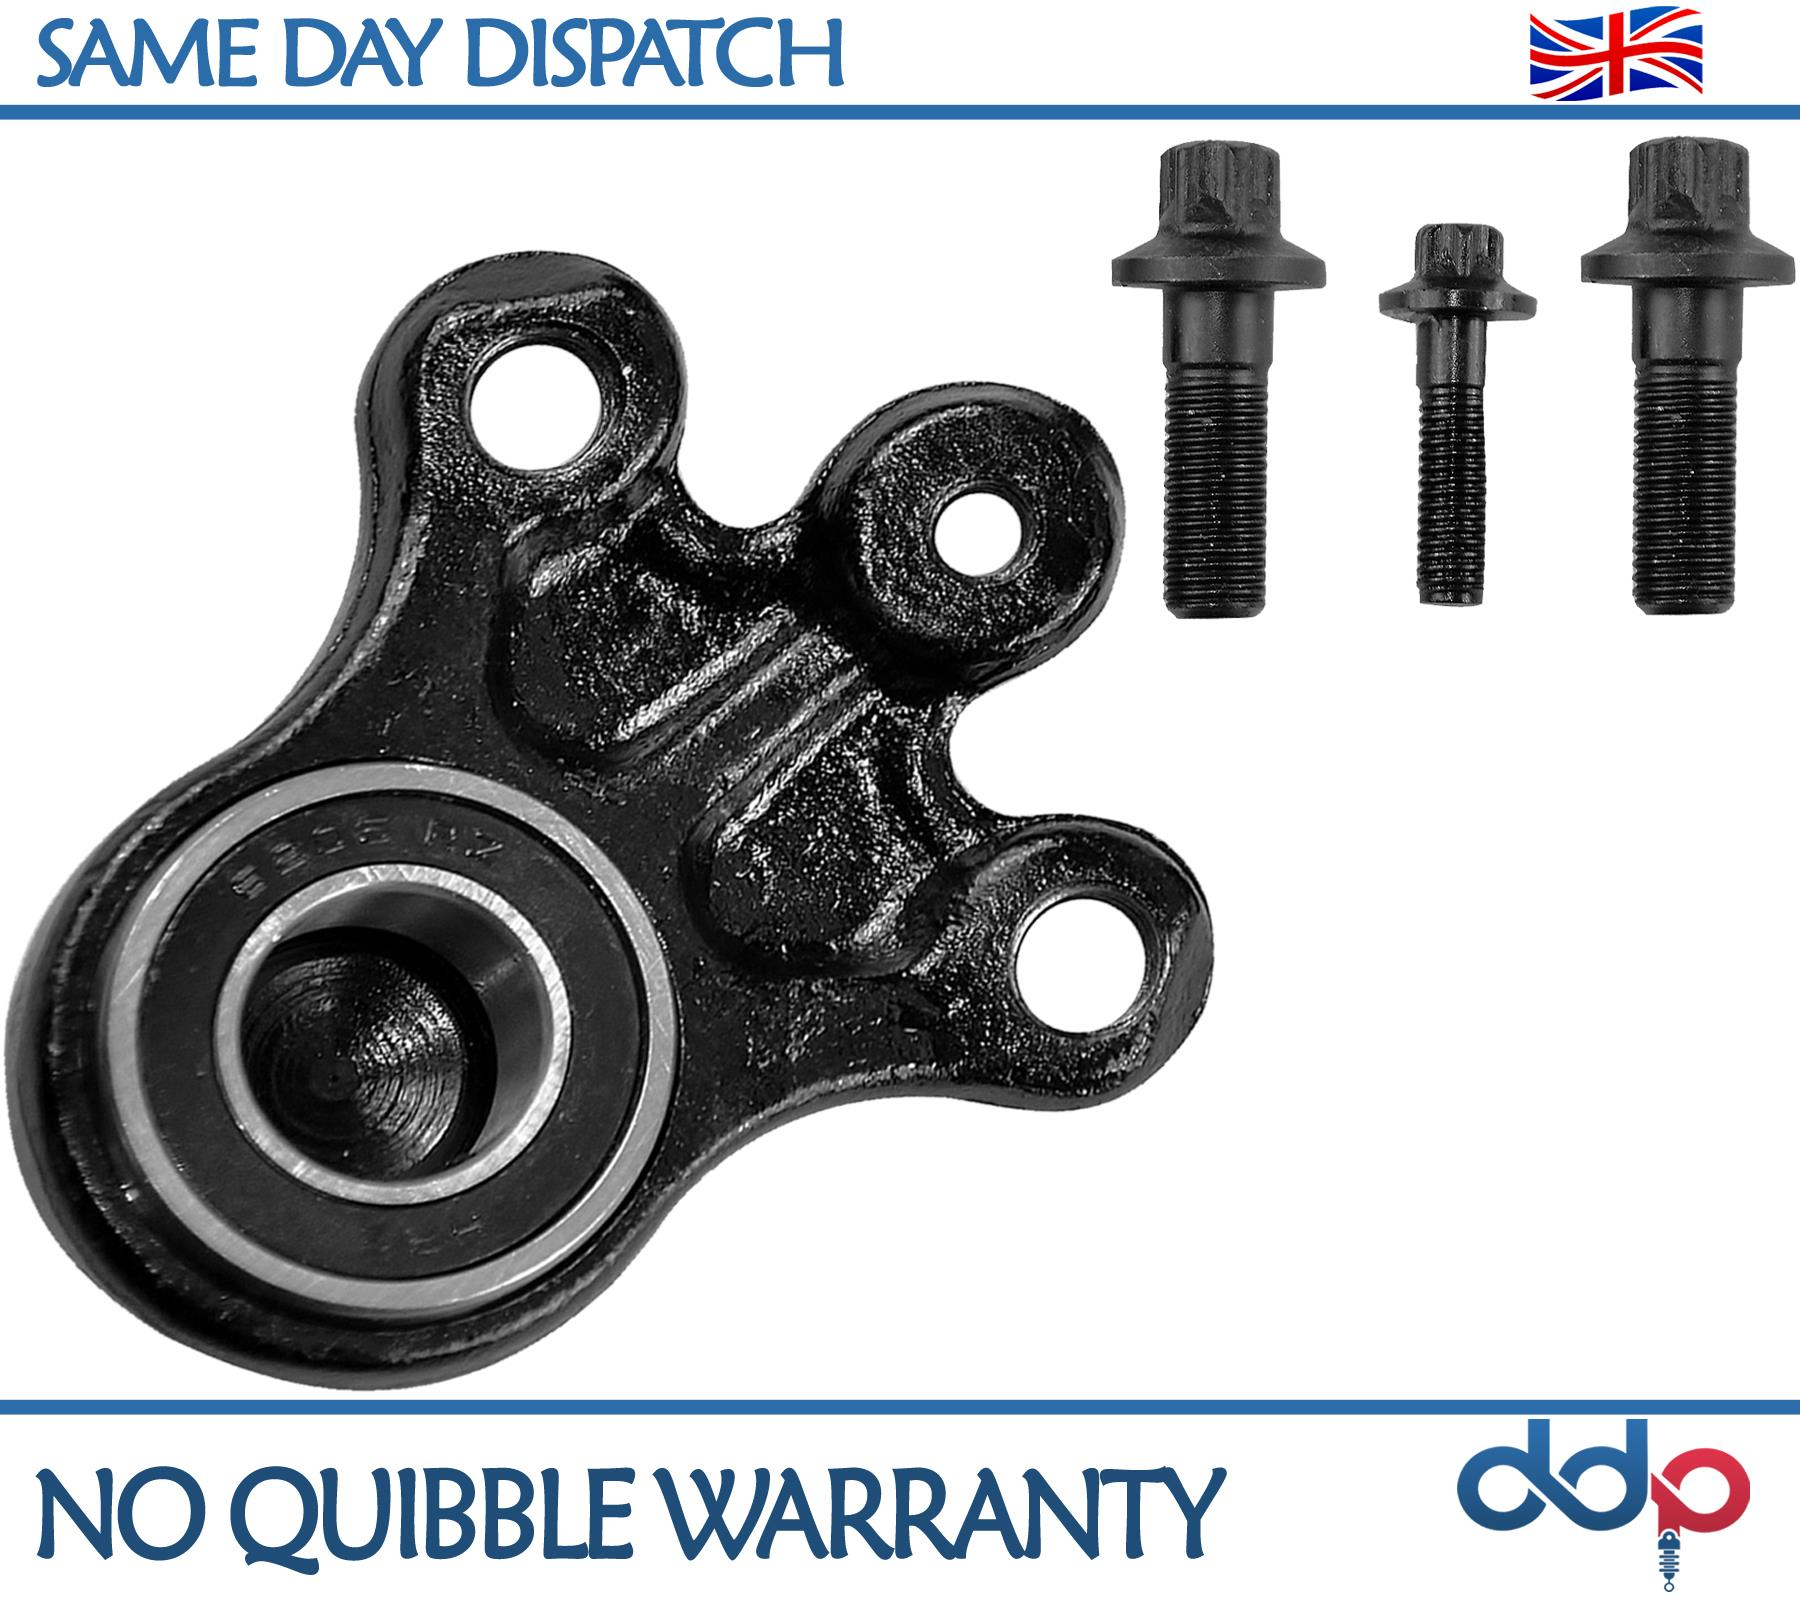 CITROEN C4 PICASSO  2 LOWER BOTTOM WISHBONE ARM BALL JOINTS LH /& RH QUALITY